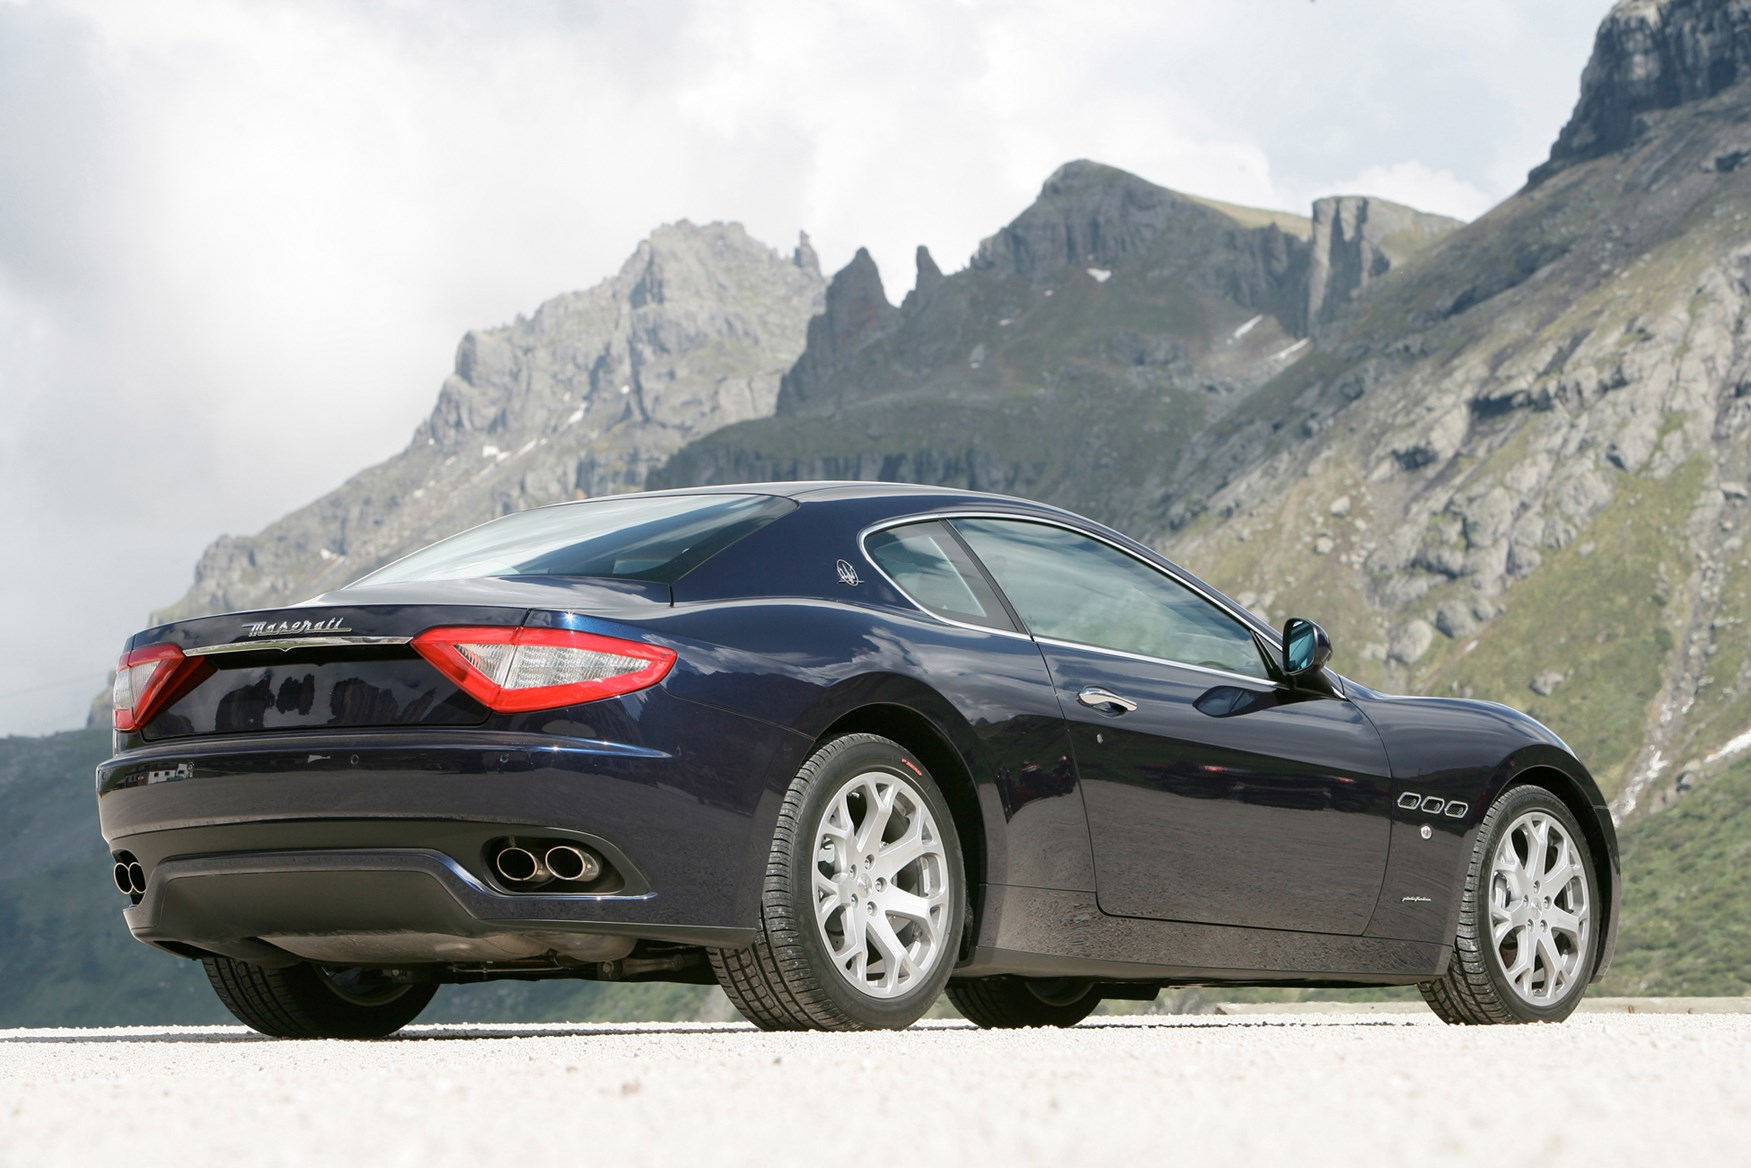 Maserati granturismo maintenance costs